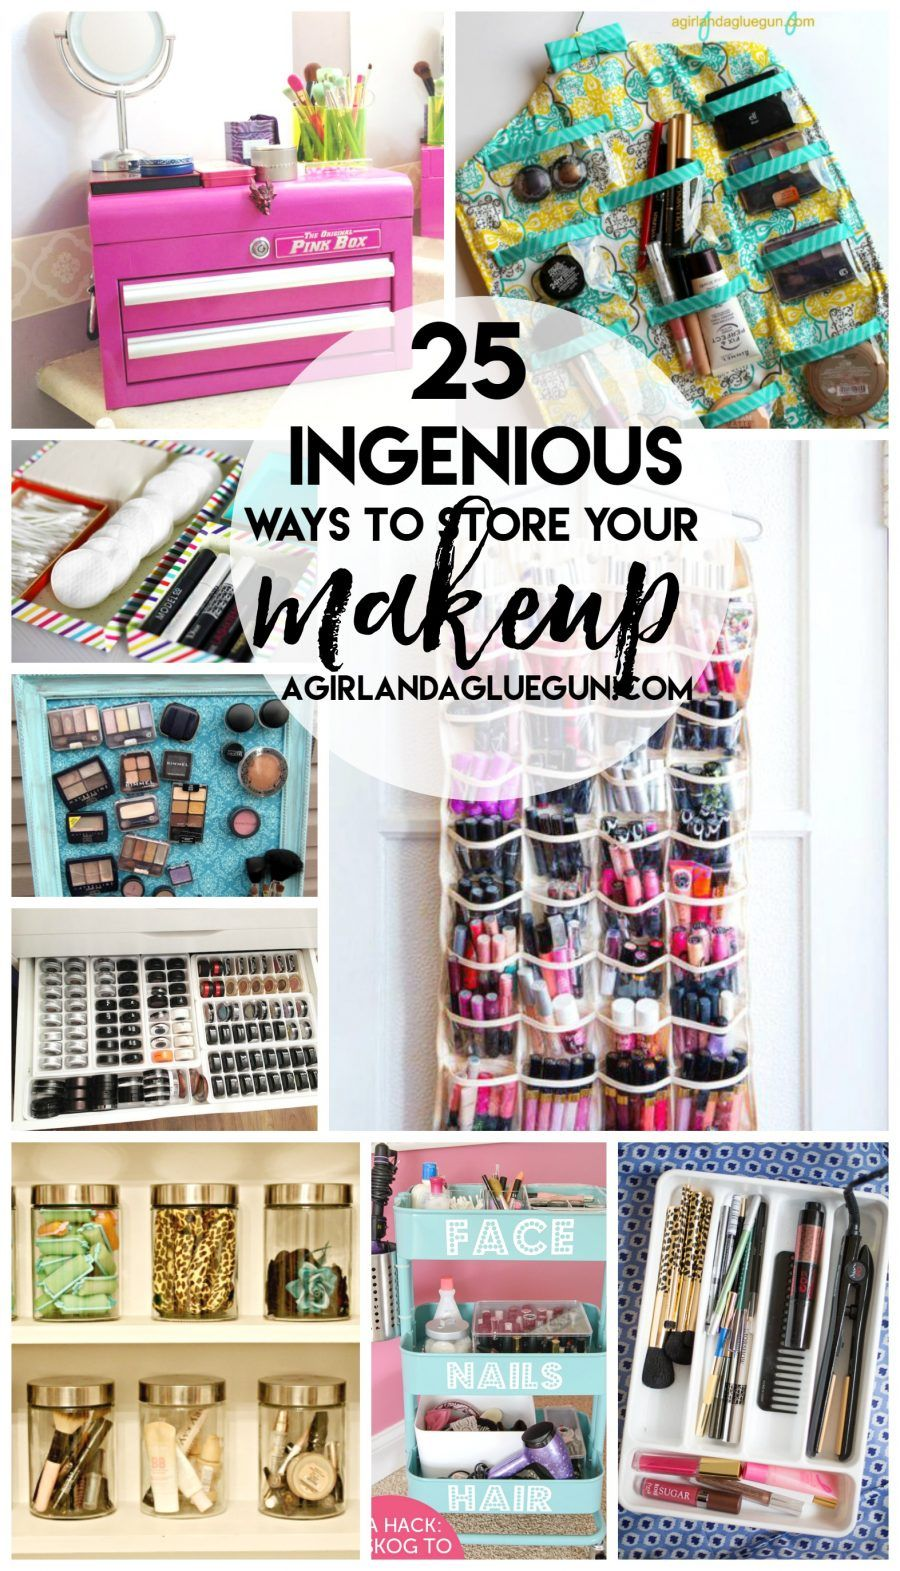 let's get organizedmakeup Makeup storage organization